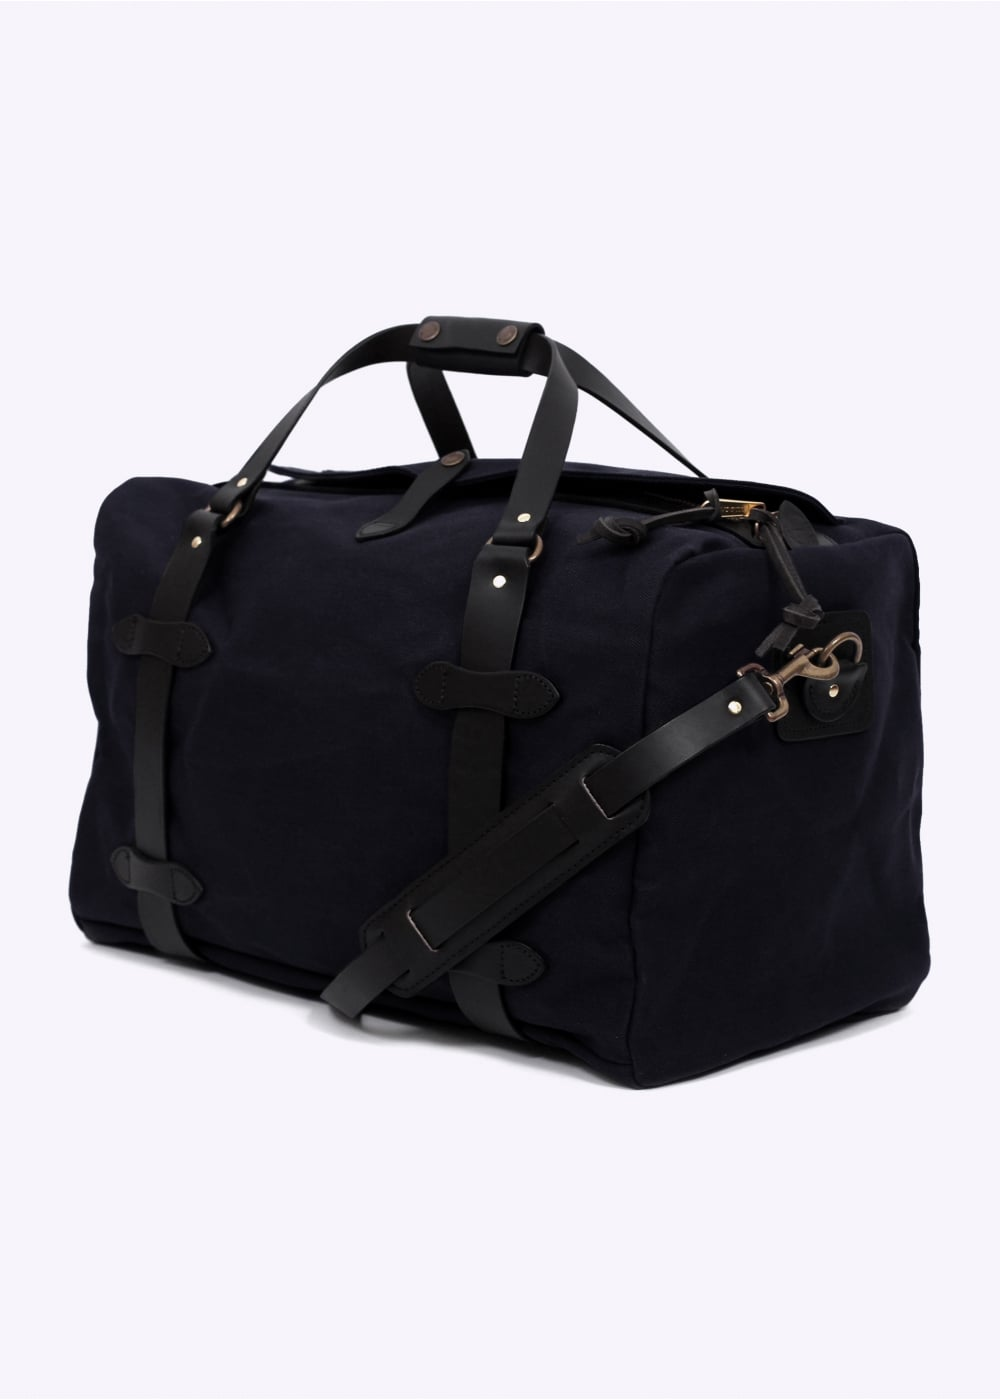 filson duffle carry on bag navy filson from triads uk. Black Bedroom Furniture Sets. Home Design Ideas